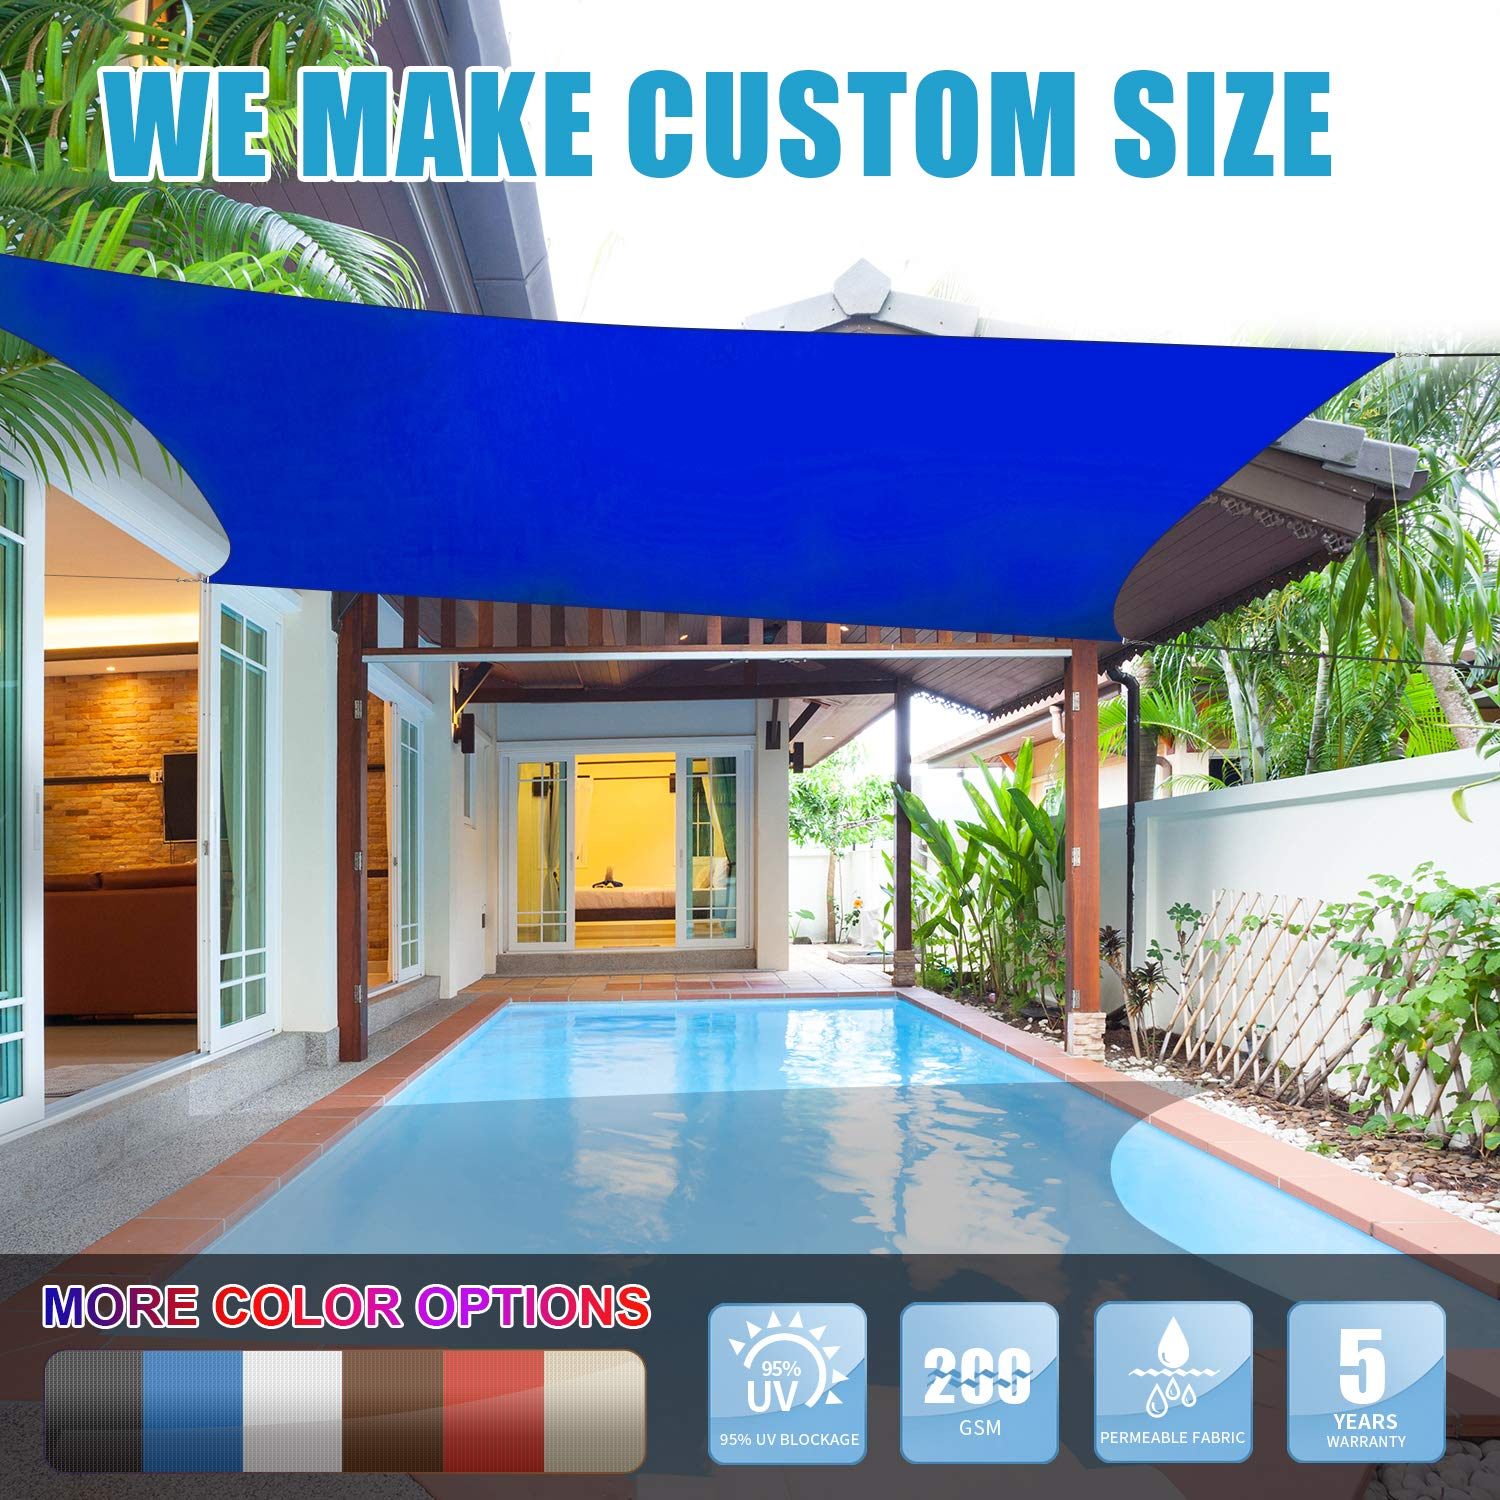 Amgo 12' x 16' Blue Rectangle Sun Shade Sail Canopy Awning, 95% UV Blockage, Water & Air Permeable, Commercial and Residential, for Patio Yard Pergola, 5 Years Warranty (Available for Custom Sizes)